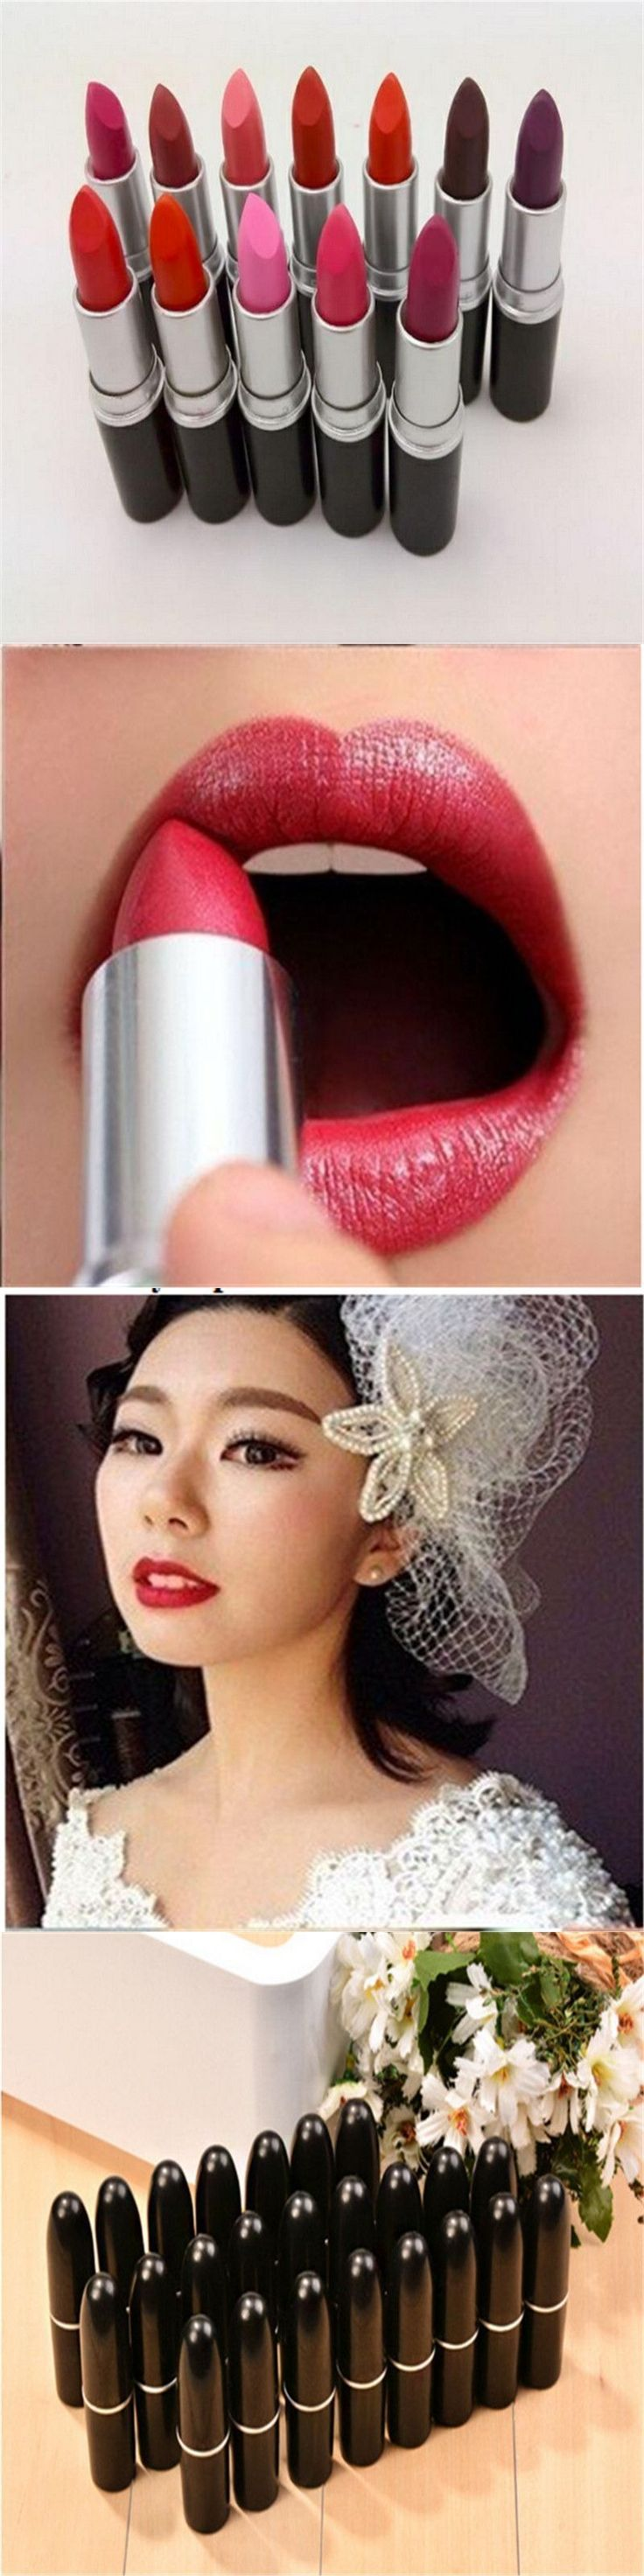 12 Colors Matte Lipstick Elegant Sex Make Up Lipsticks Waterproof Lipsticks Pencil Lip Stick Cosmetic Lip Balm Dress Women Gift